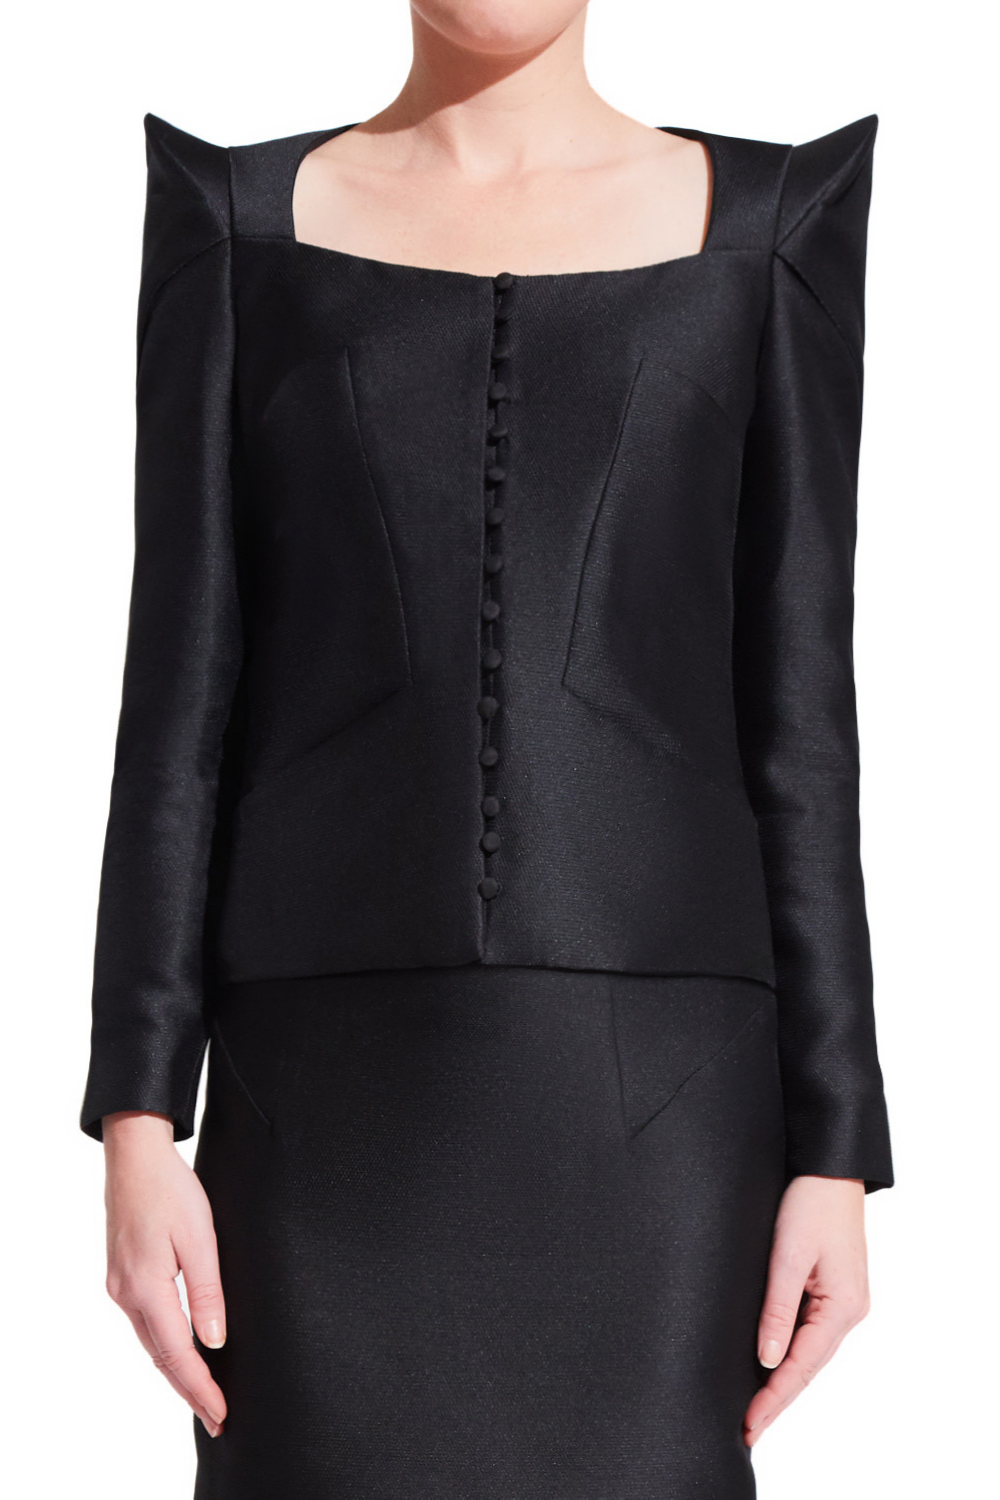 Women's black formal jacket with long sleeves and centered front buttons. Oragami style geometric design with padded shoulders